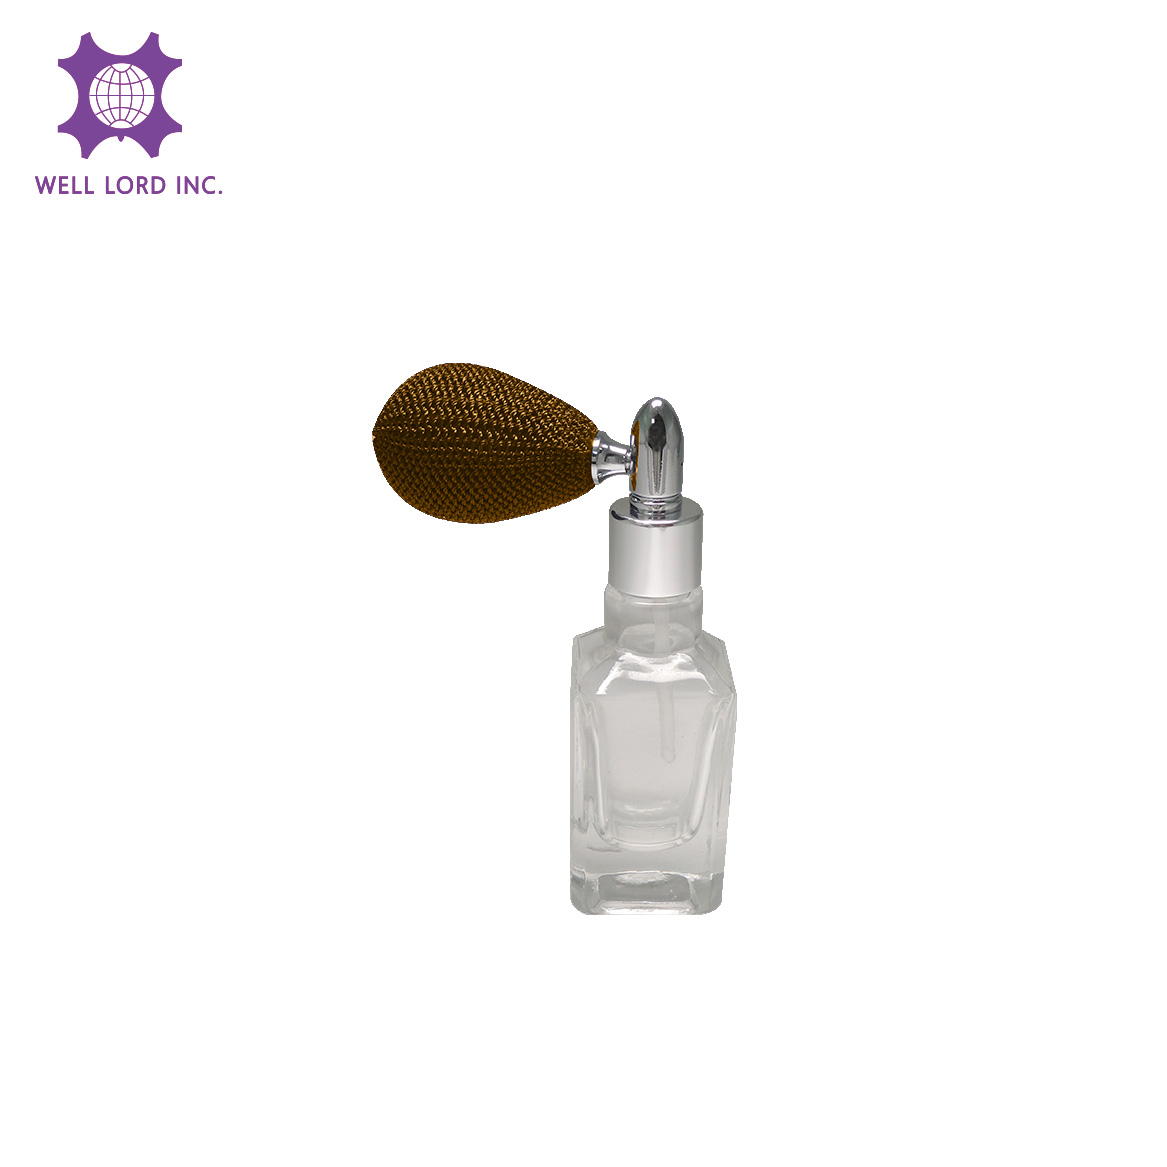 Elegant 13ml square glass bottle with sepia brown bulb sprayer perfume bottle